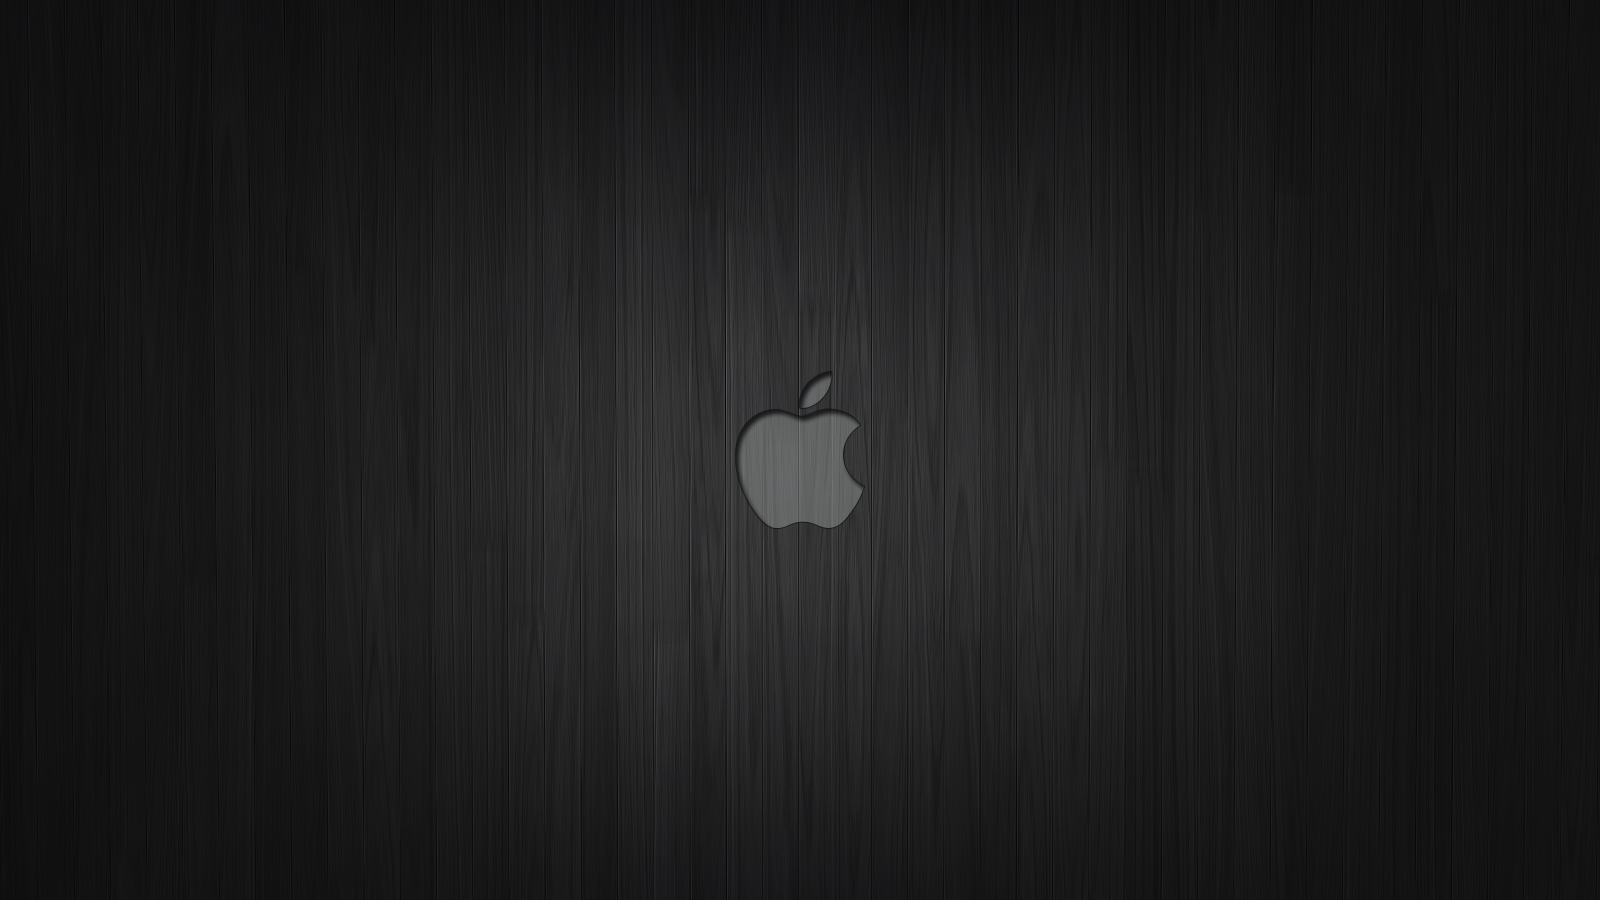 DeviantArt: More Like Apple dark wood wallpaper by bercikmeister